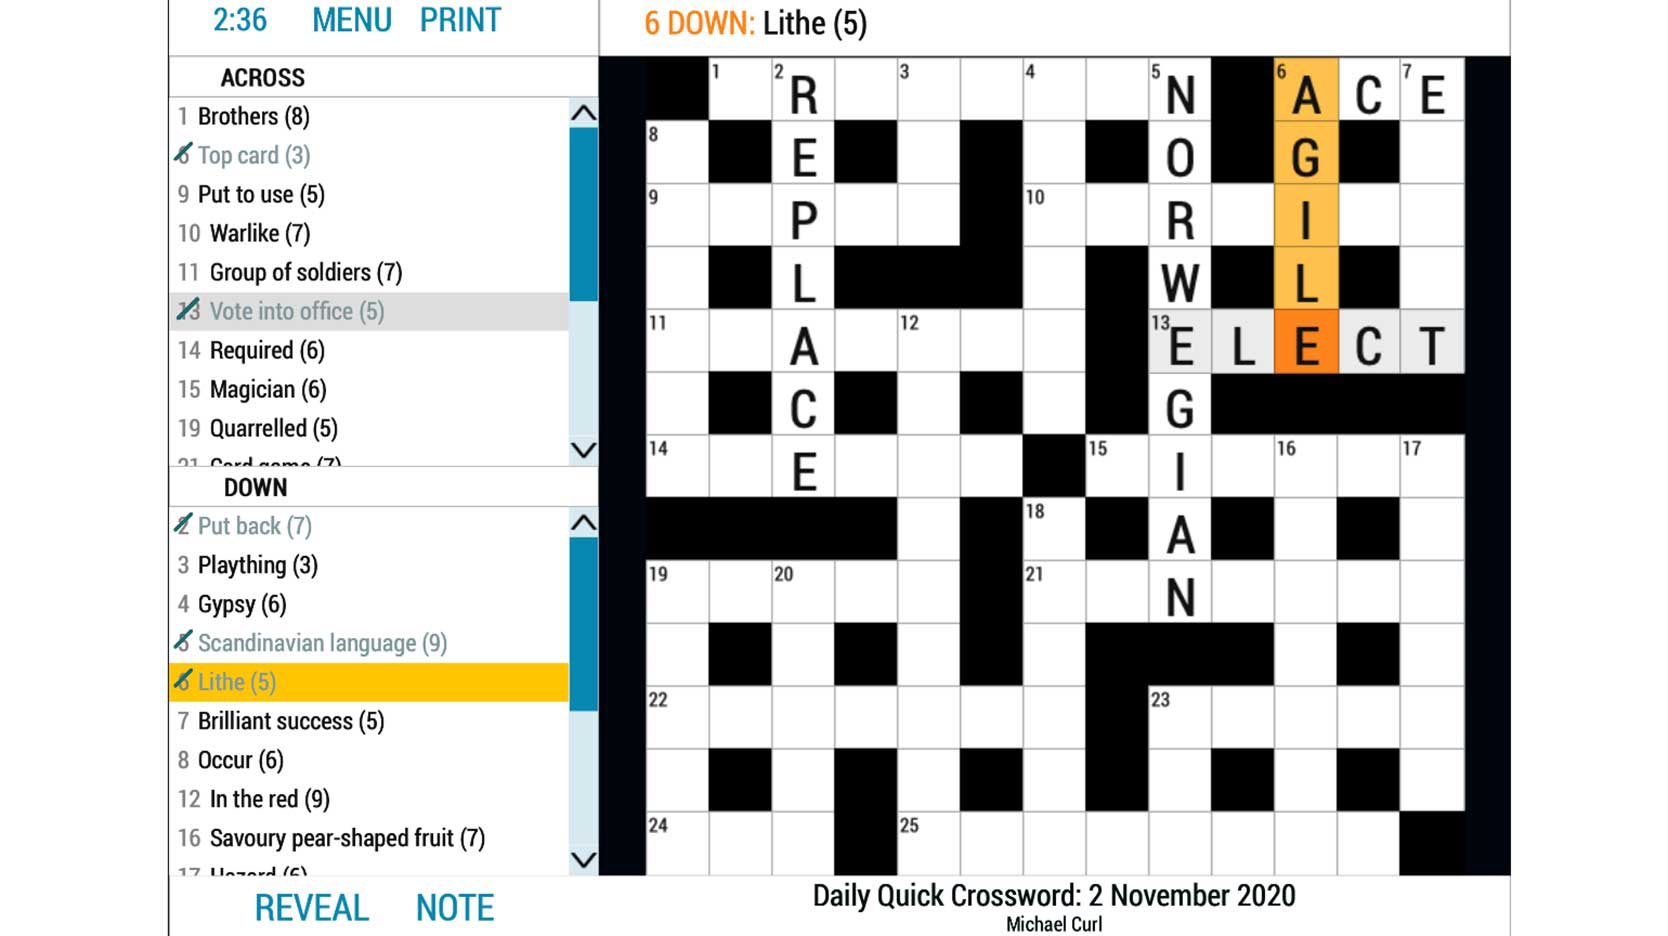 daily quick crossword online word game